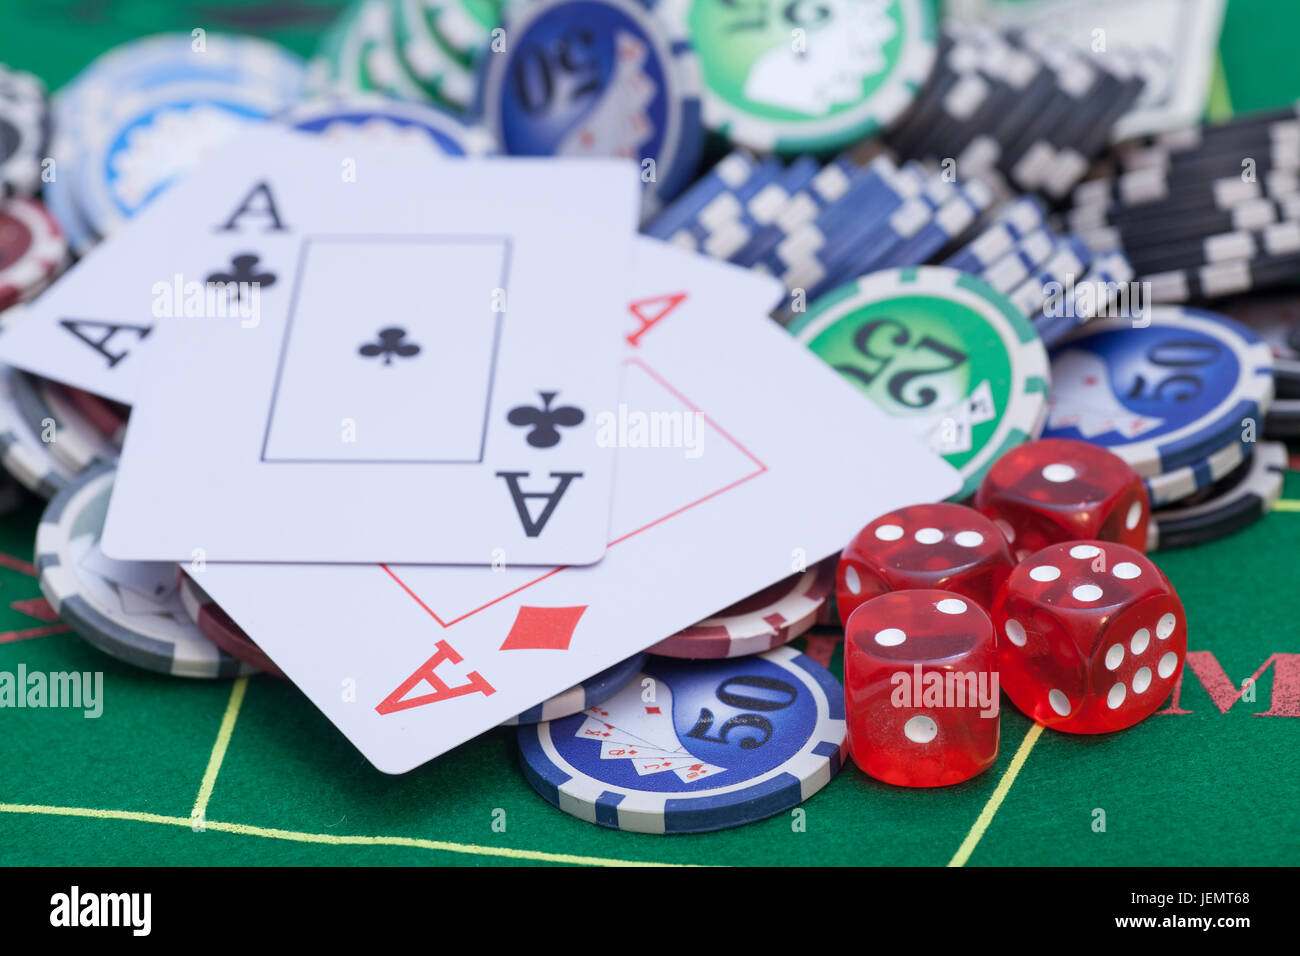 Casino Chips, Cards And Dices On Green Felt Game Table